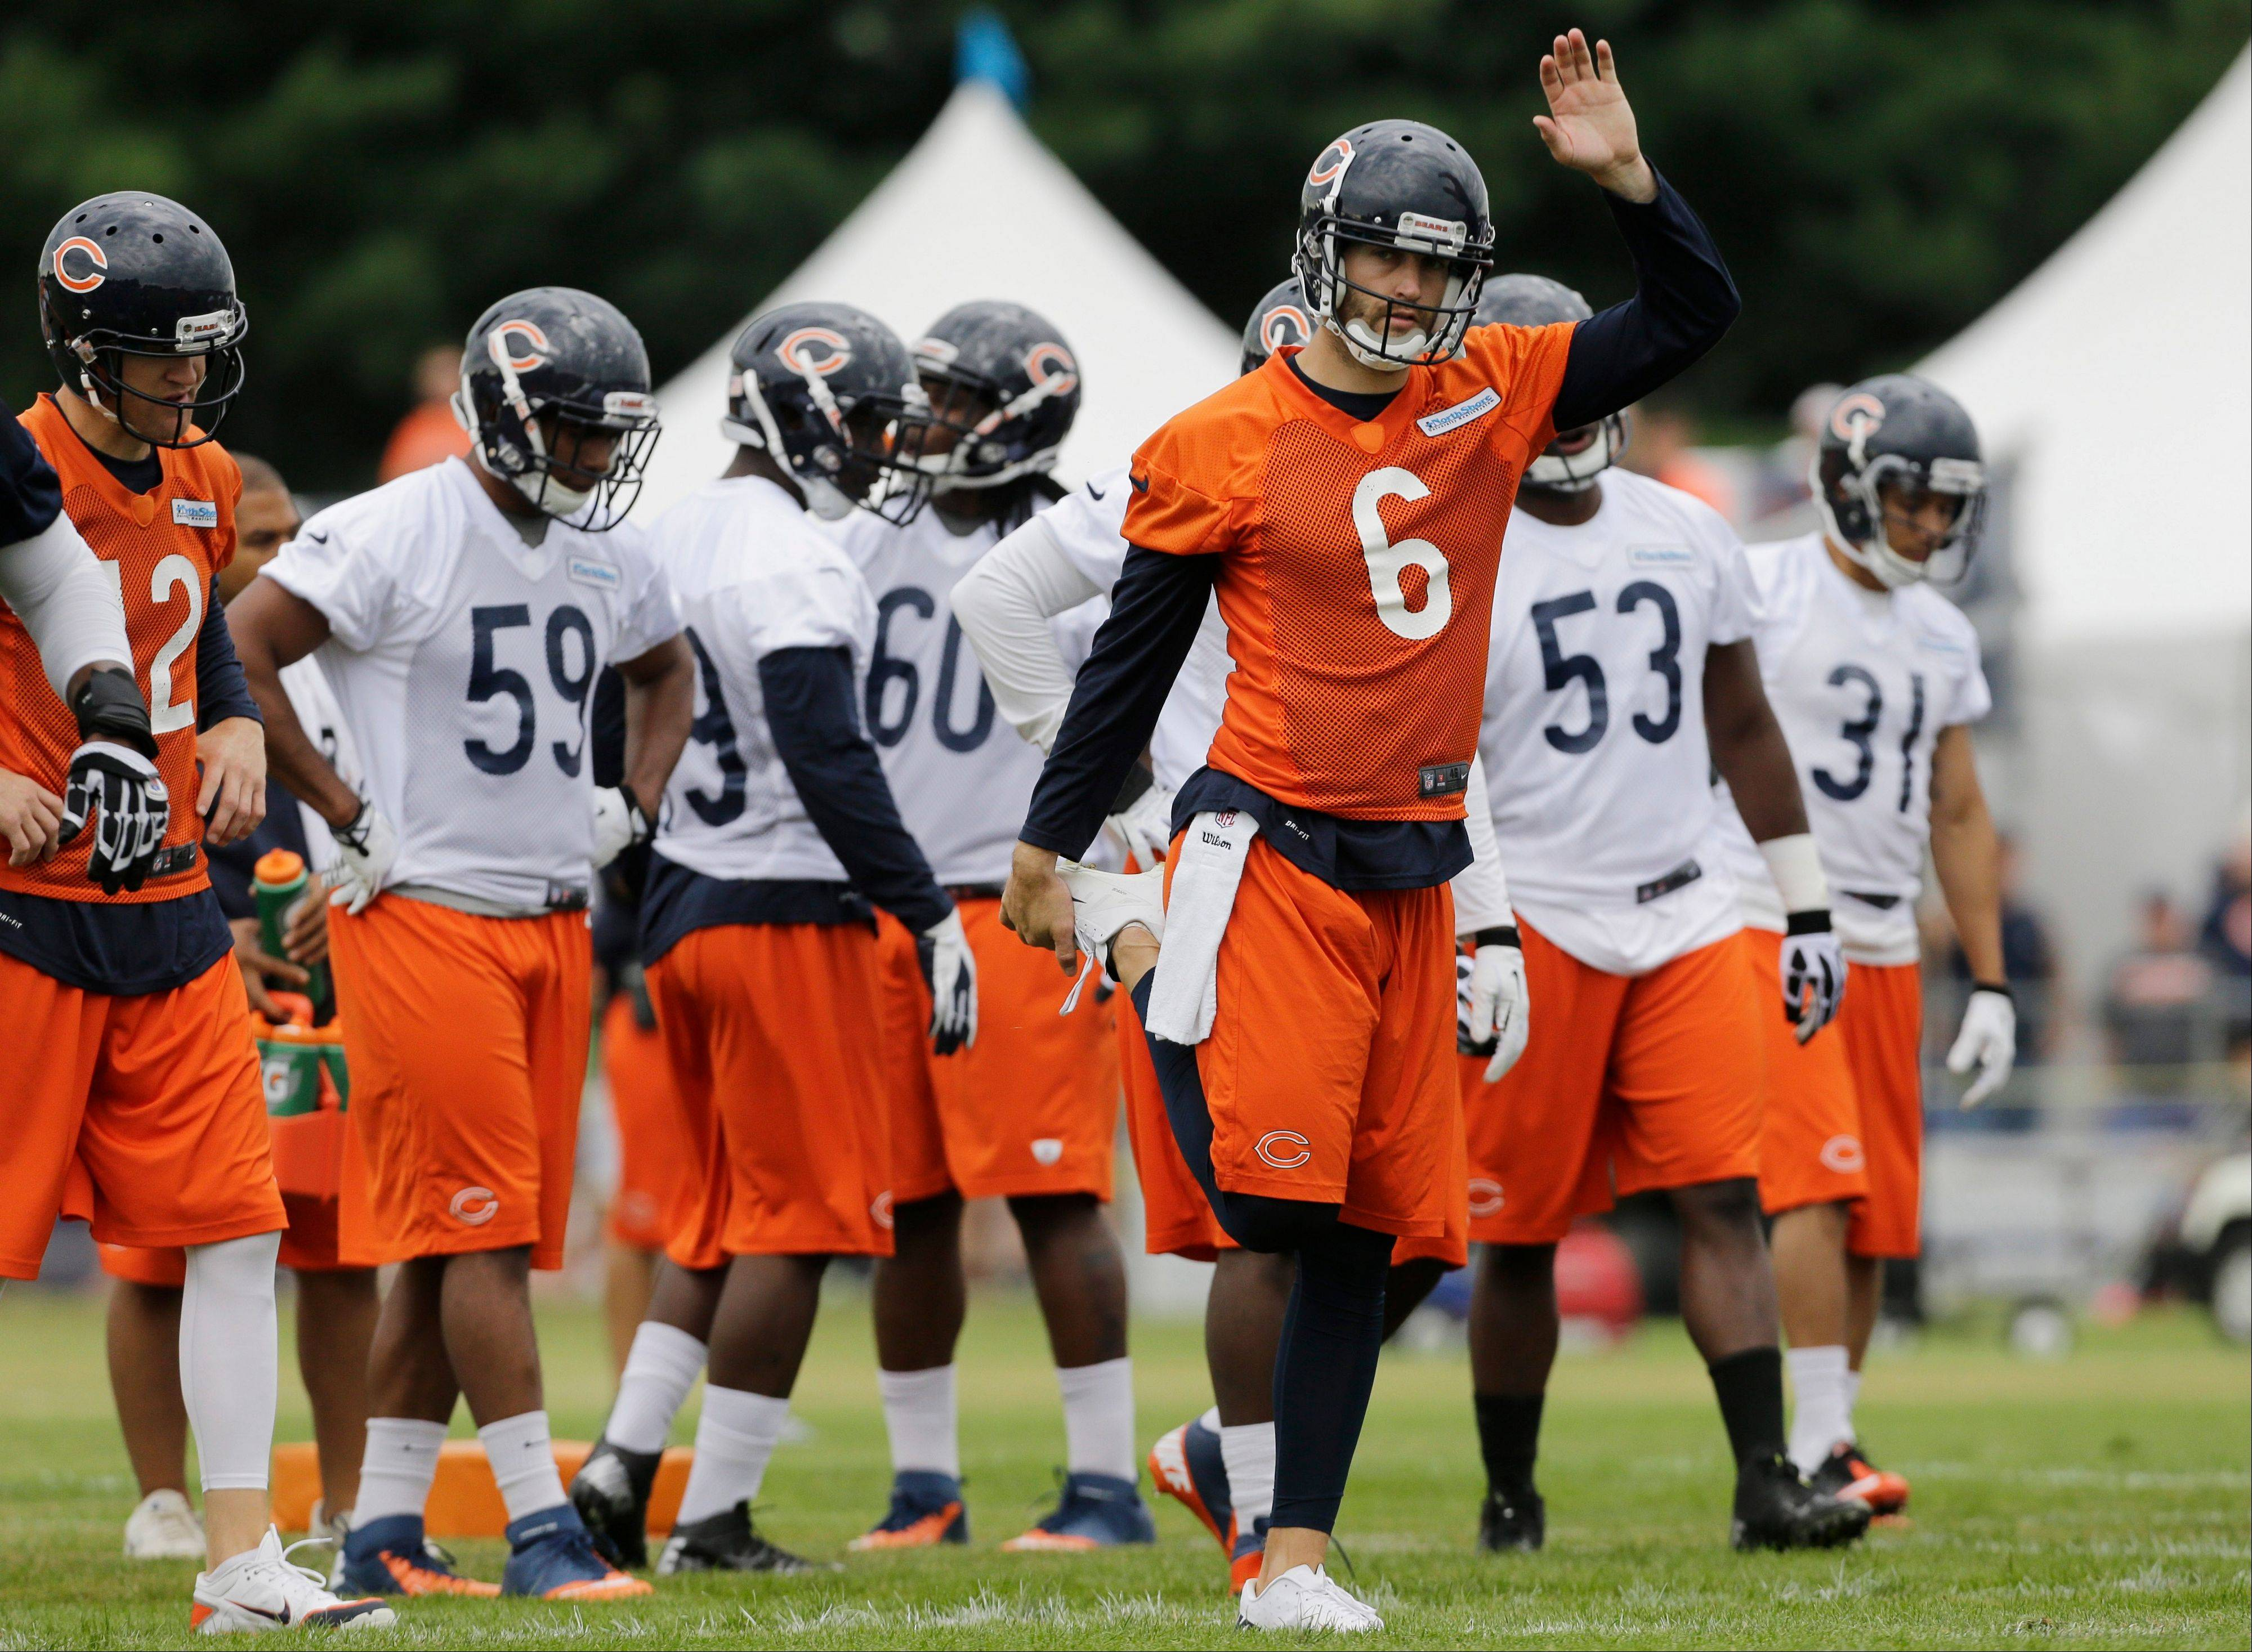 Chicago Bears quarterback Jay Cutler stretches.